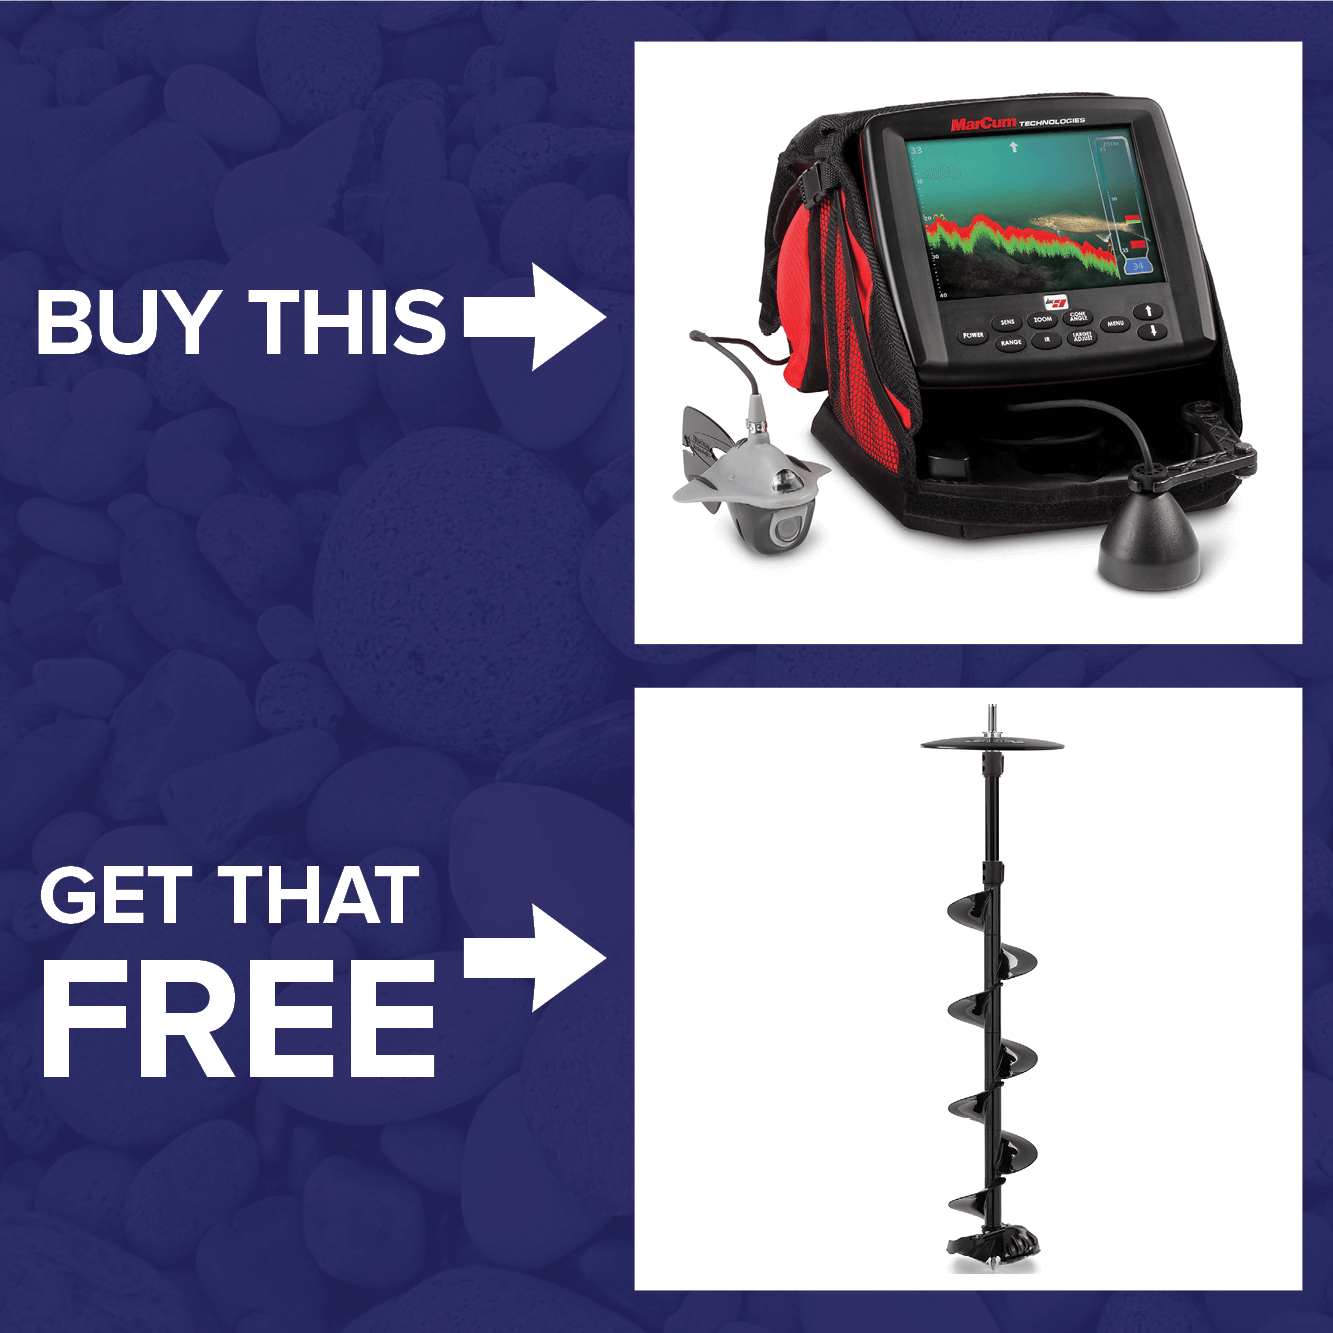 Get a FREE StrikeMaster Lite-Flite Lazer Drill Auger when you buy a MarCum LX-9 Digital Sonar/Camera System